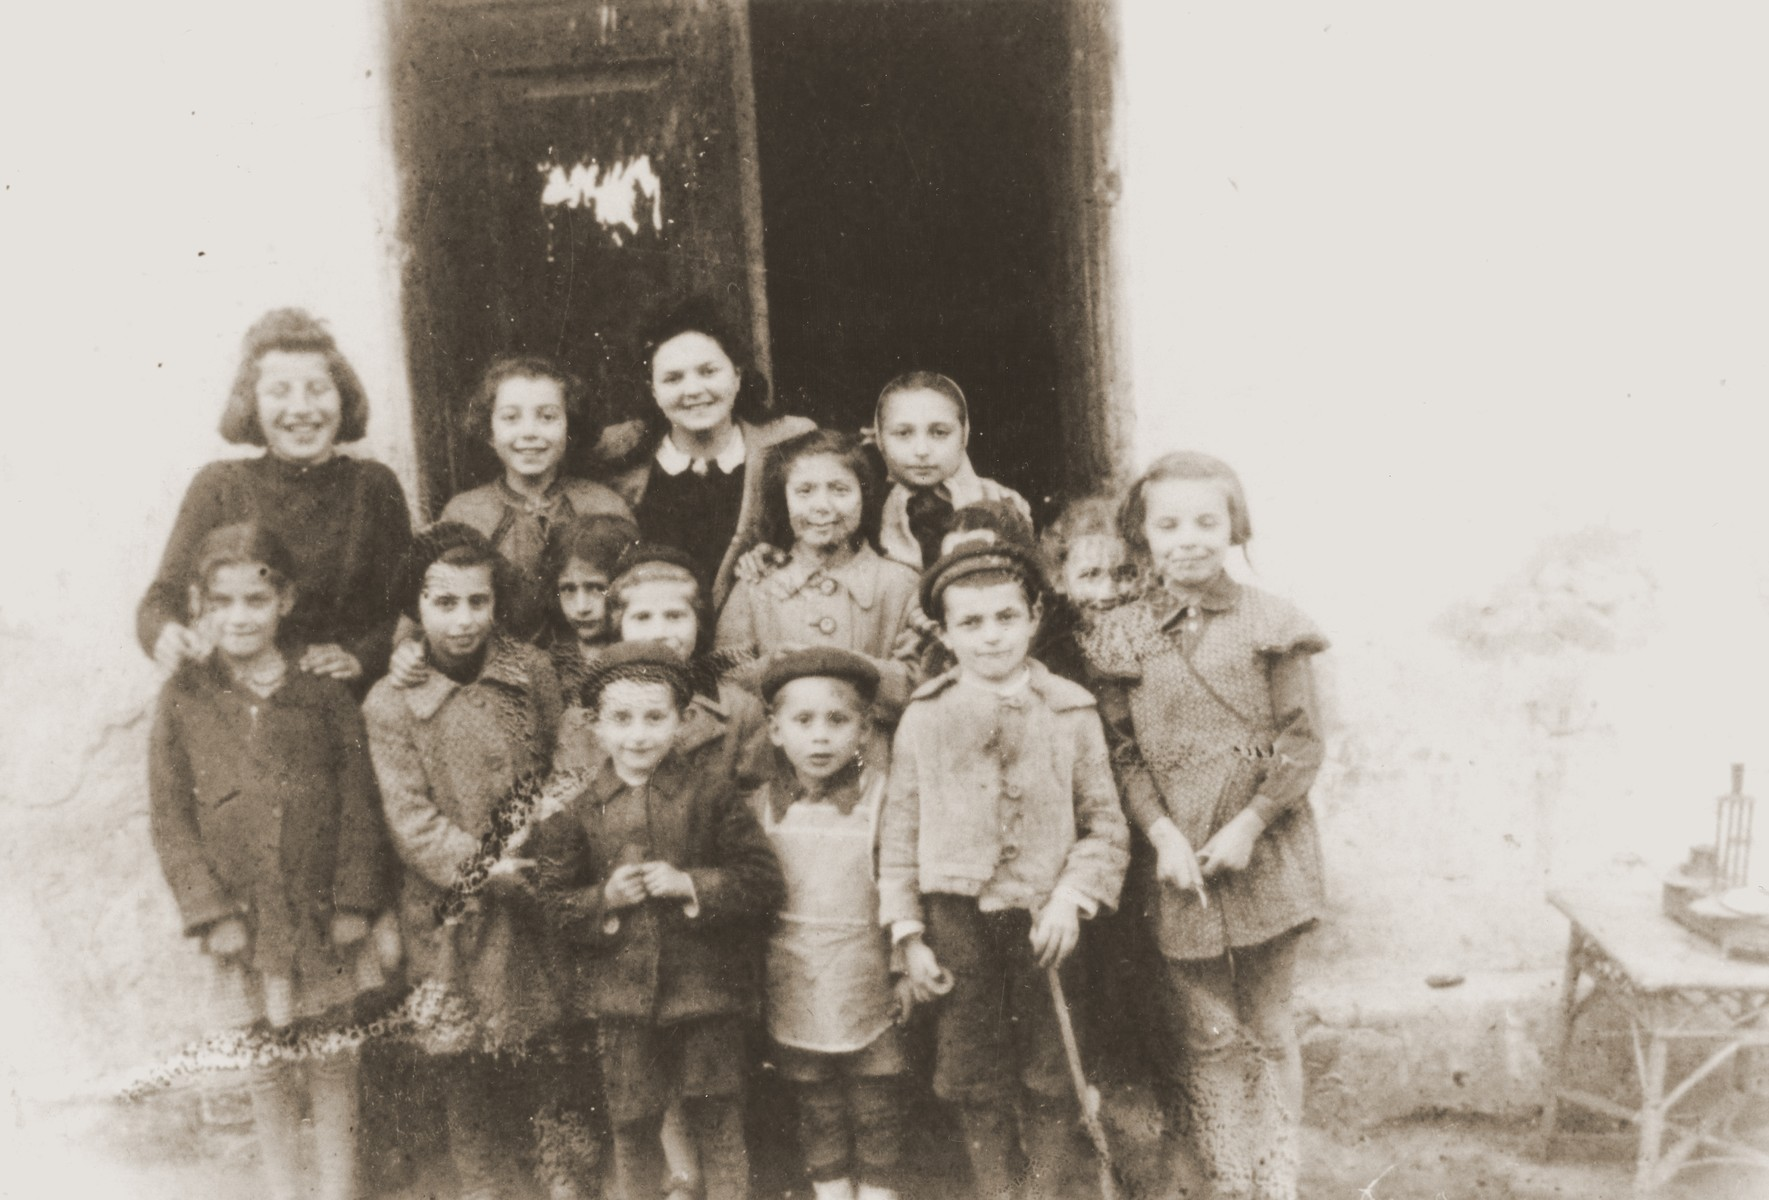 Group portrait of Jewish children in Zabno, Poland.  Among those pictured is Hania Goldman (upper left) and Mala Schwarzberg (top row, center).